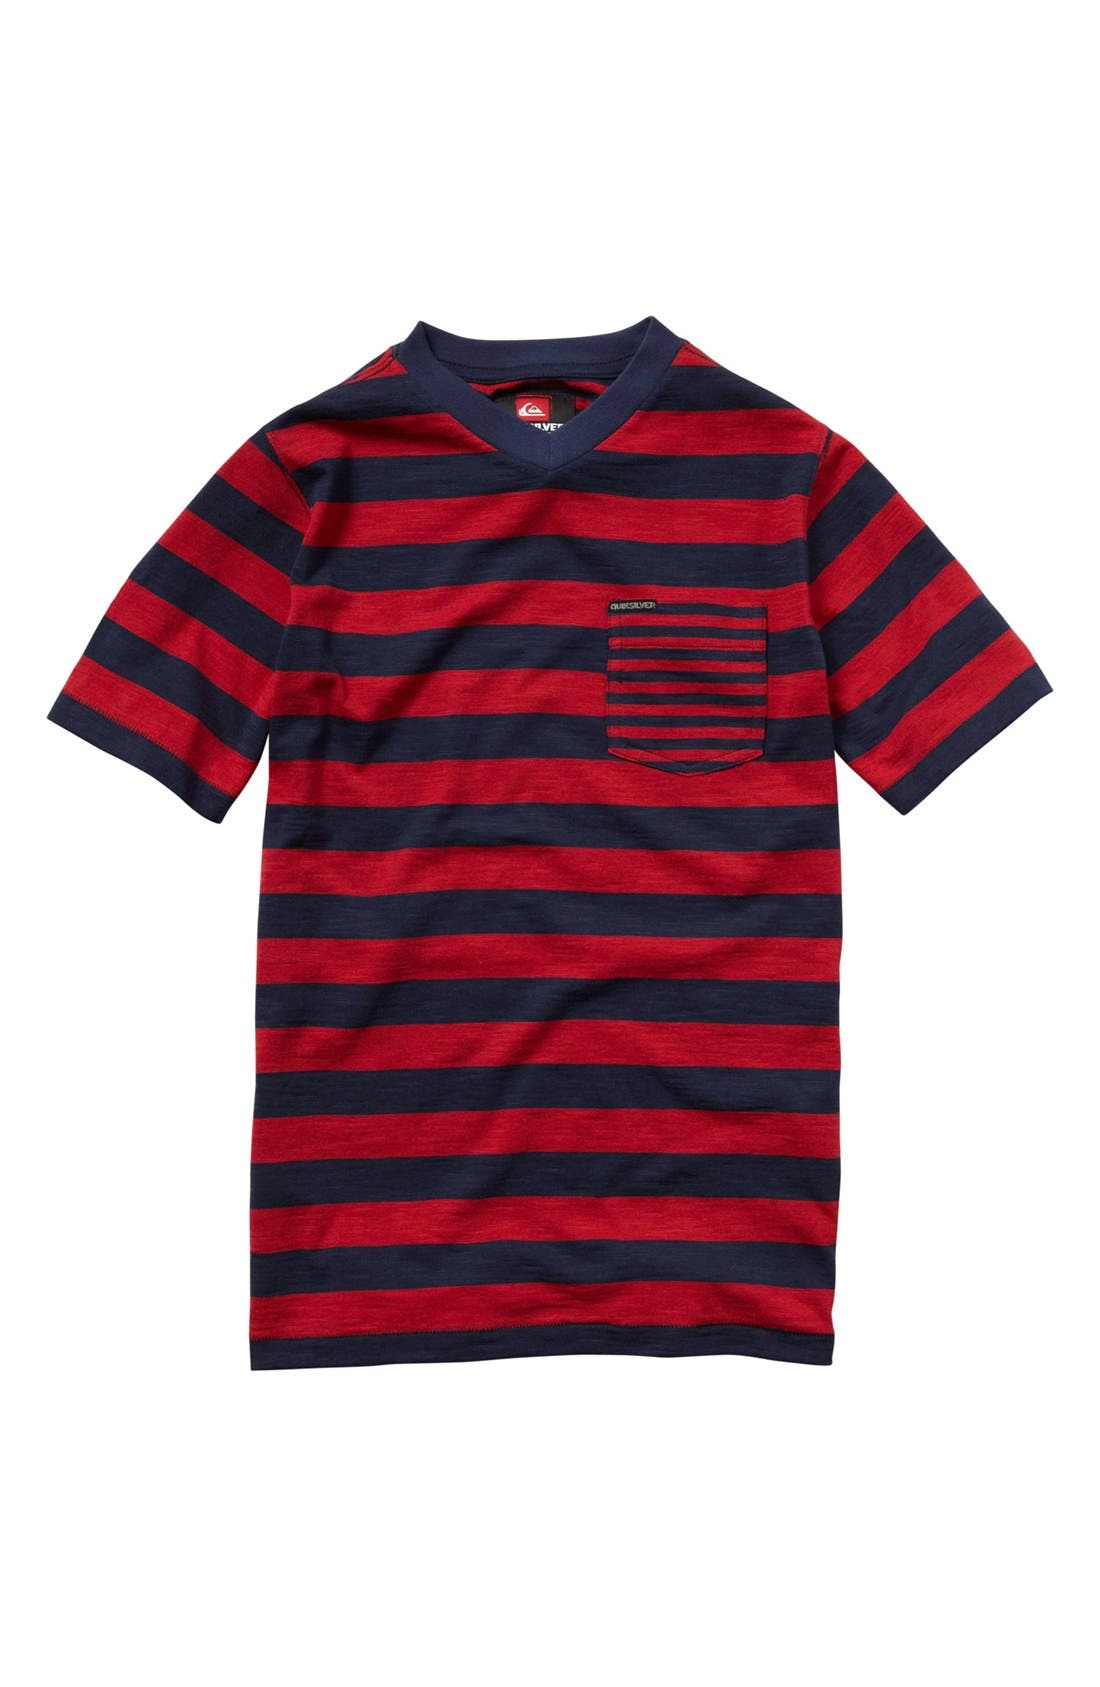 Main Image - Quiksilver 'Brody' T-Shirt (Big Boys)